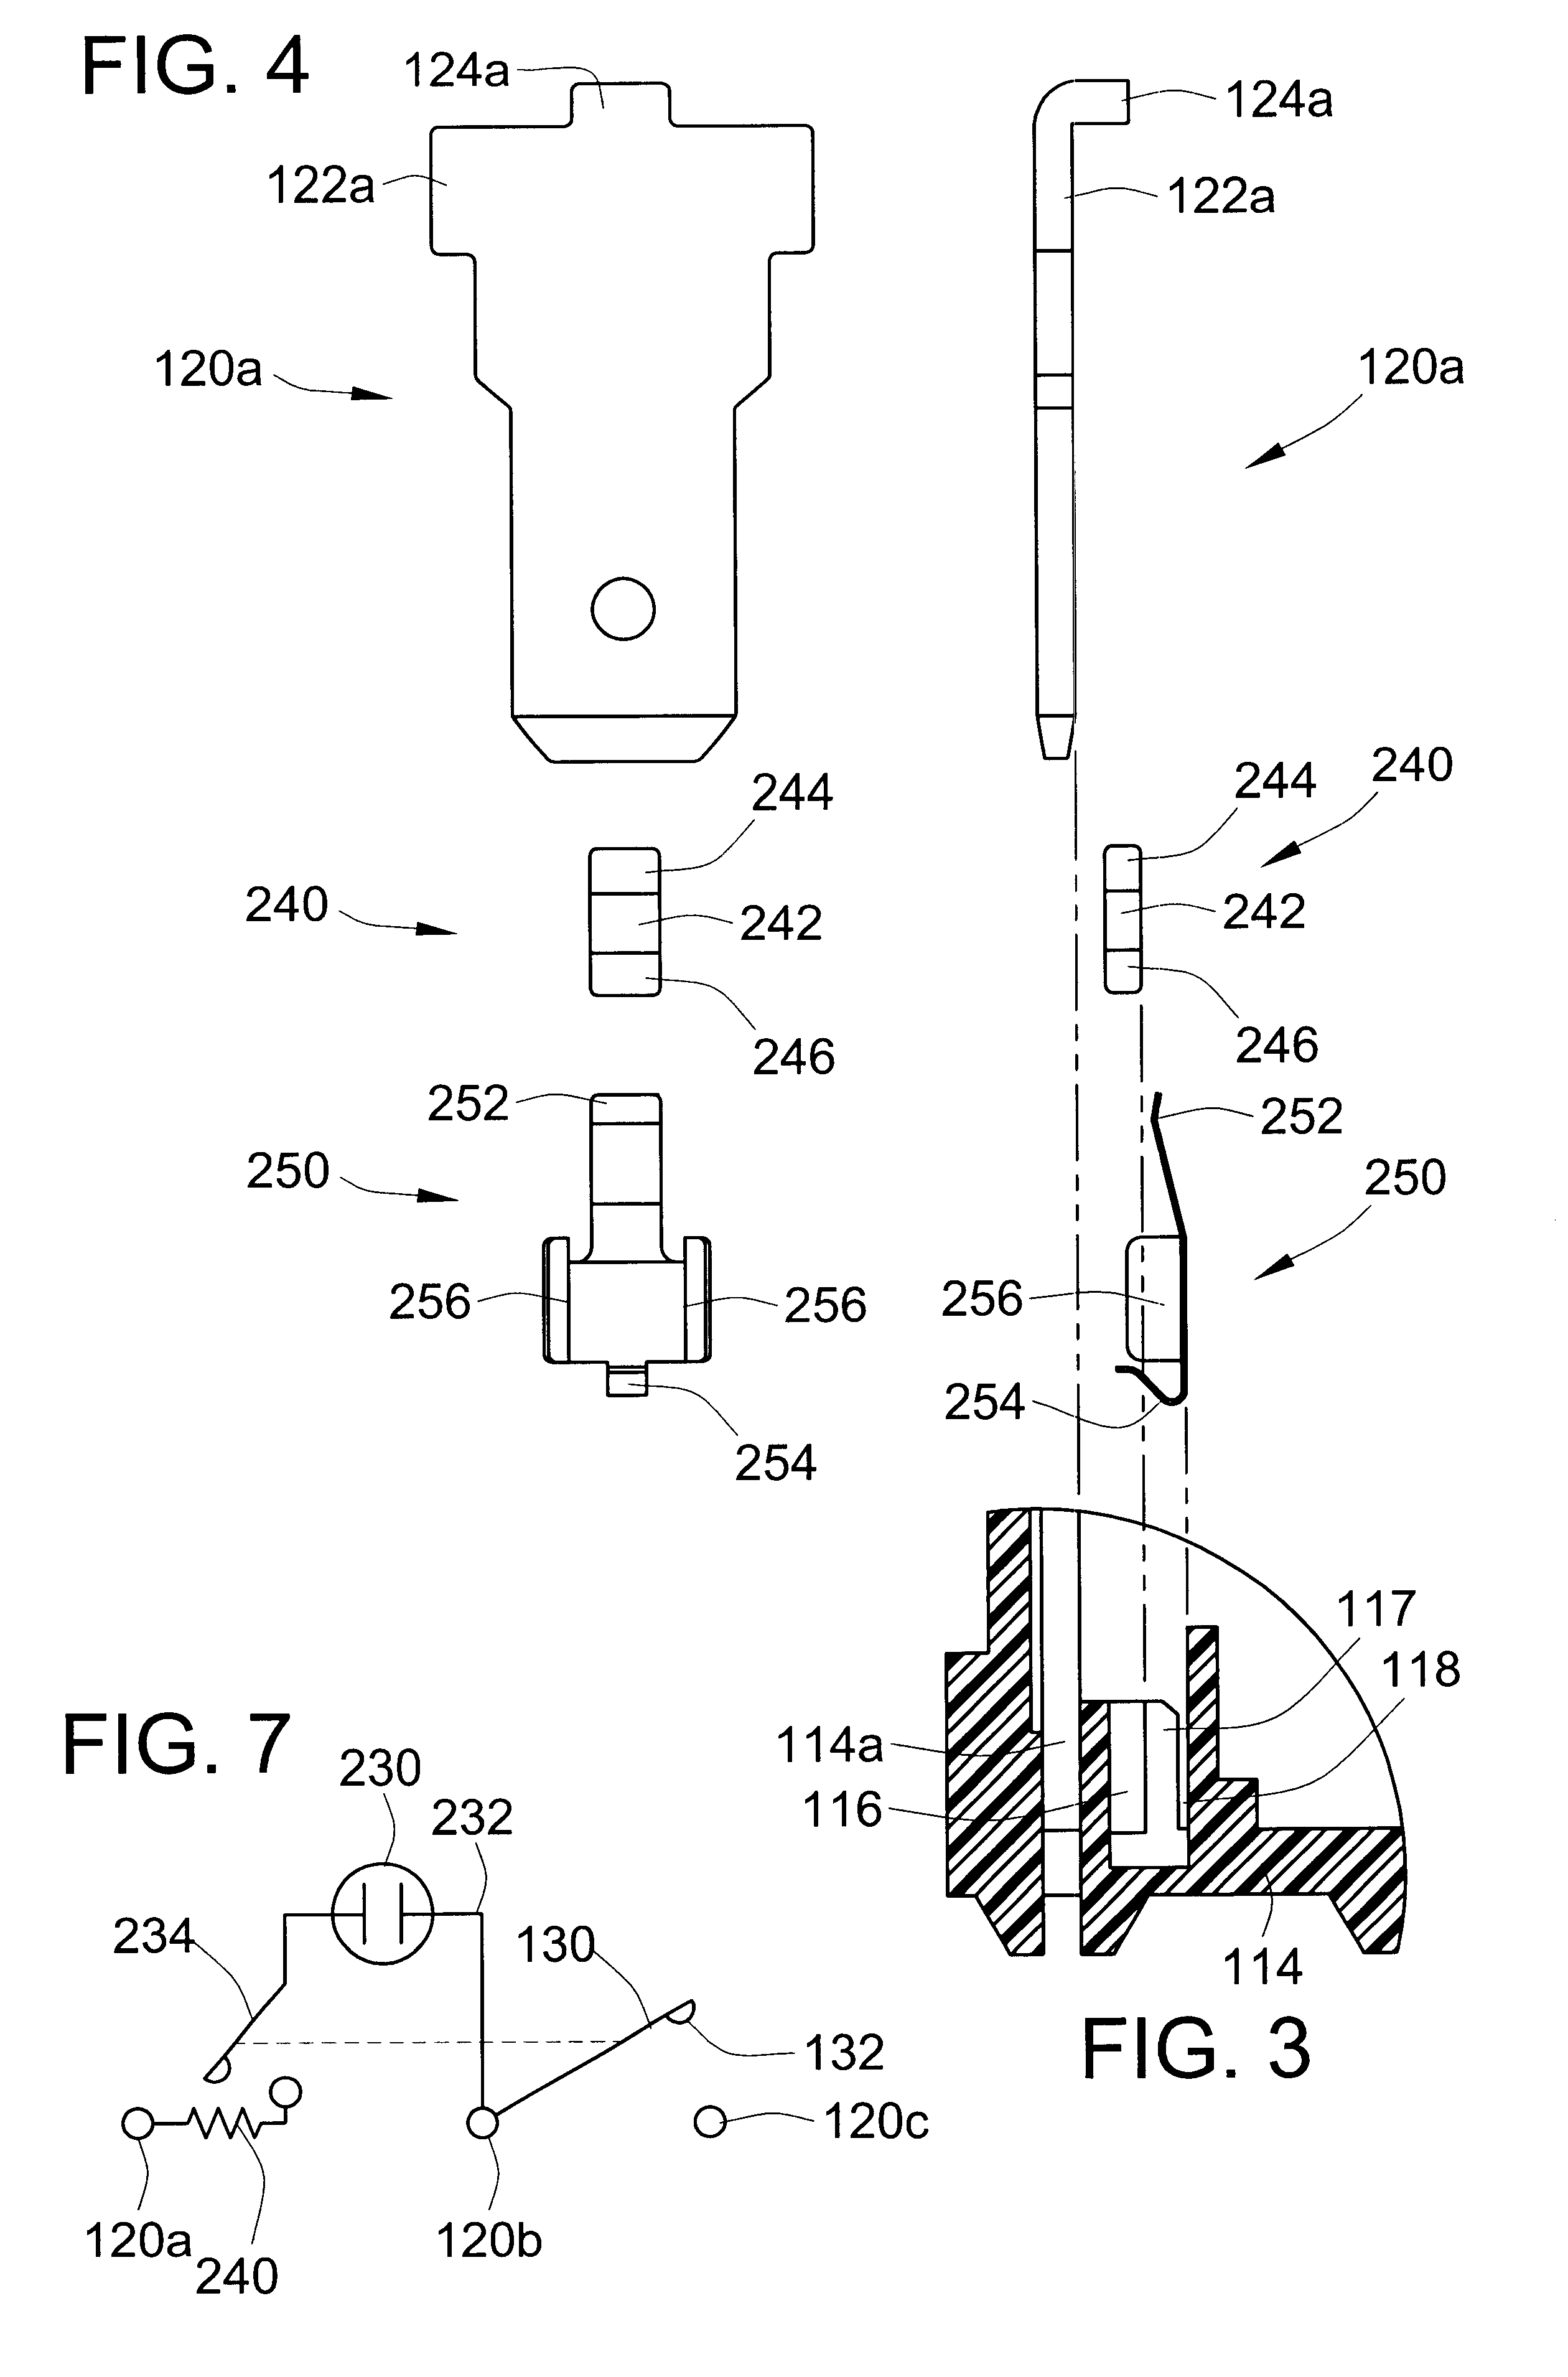 brevet us6590175 illuminated rocker switch with resistor Wiring Diagrams Ceiling Fans patent drawing